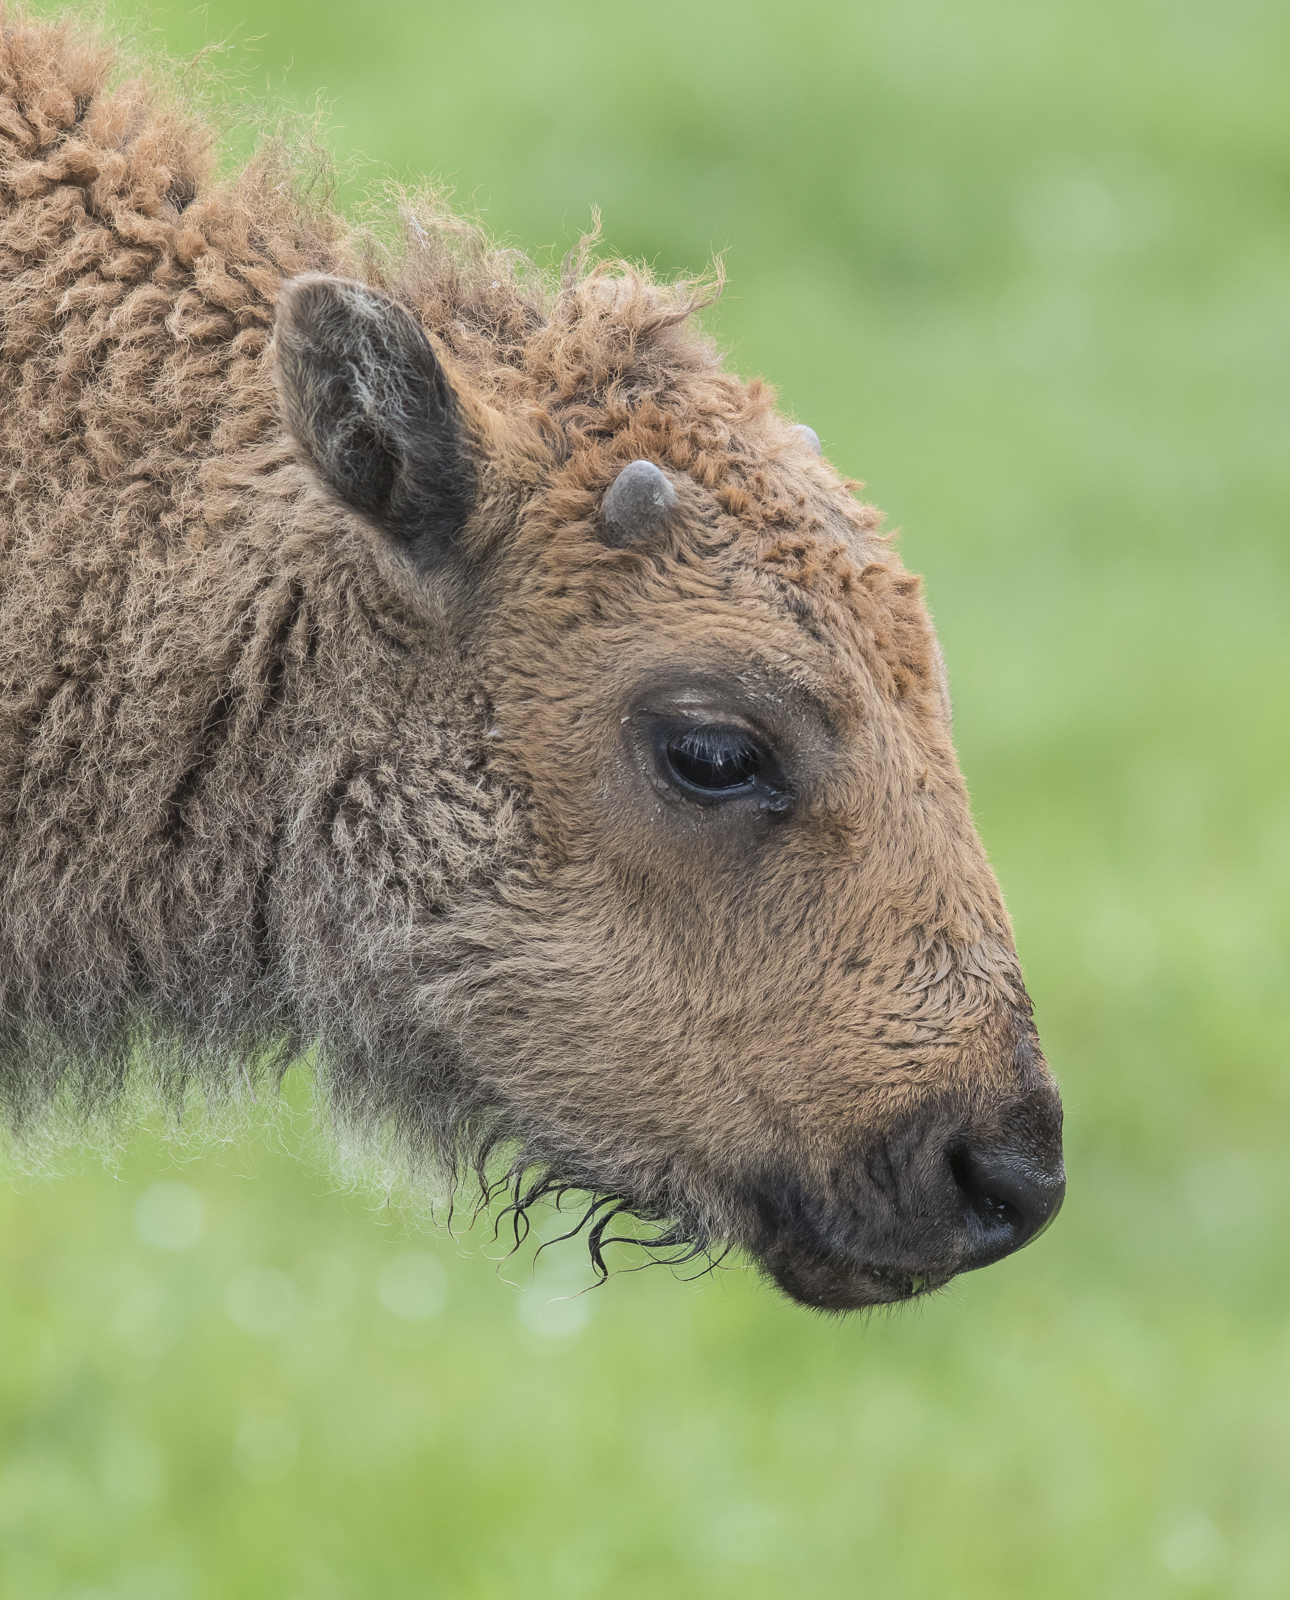 Baby bison head shot small horns showing 1